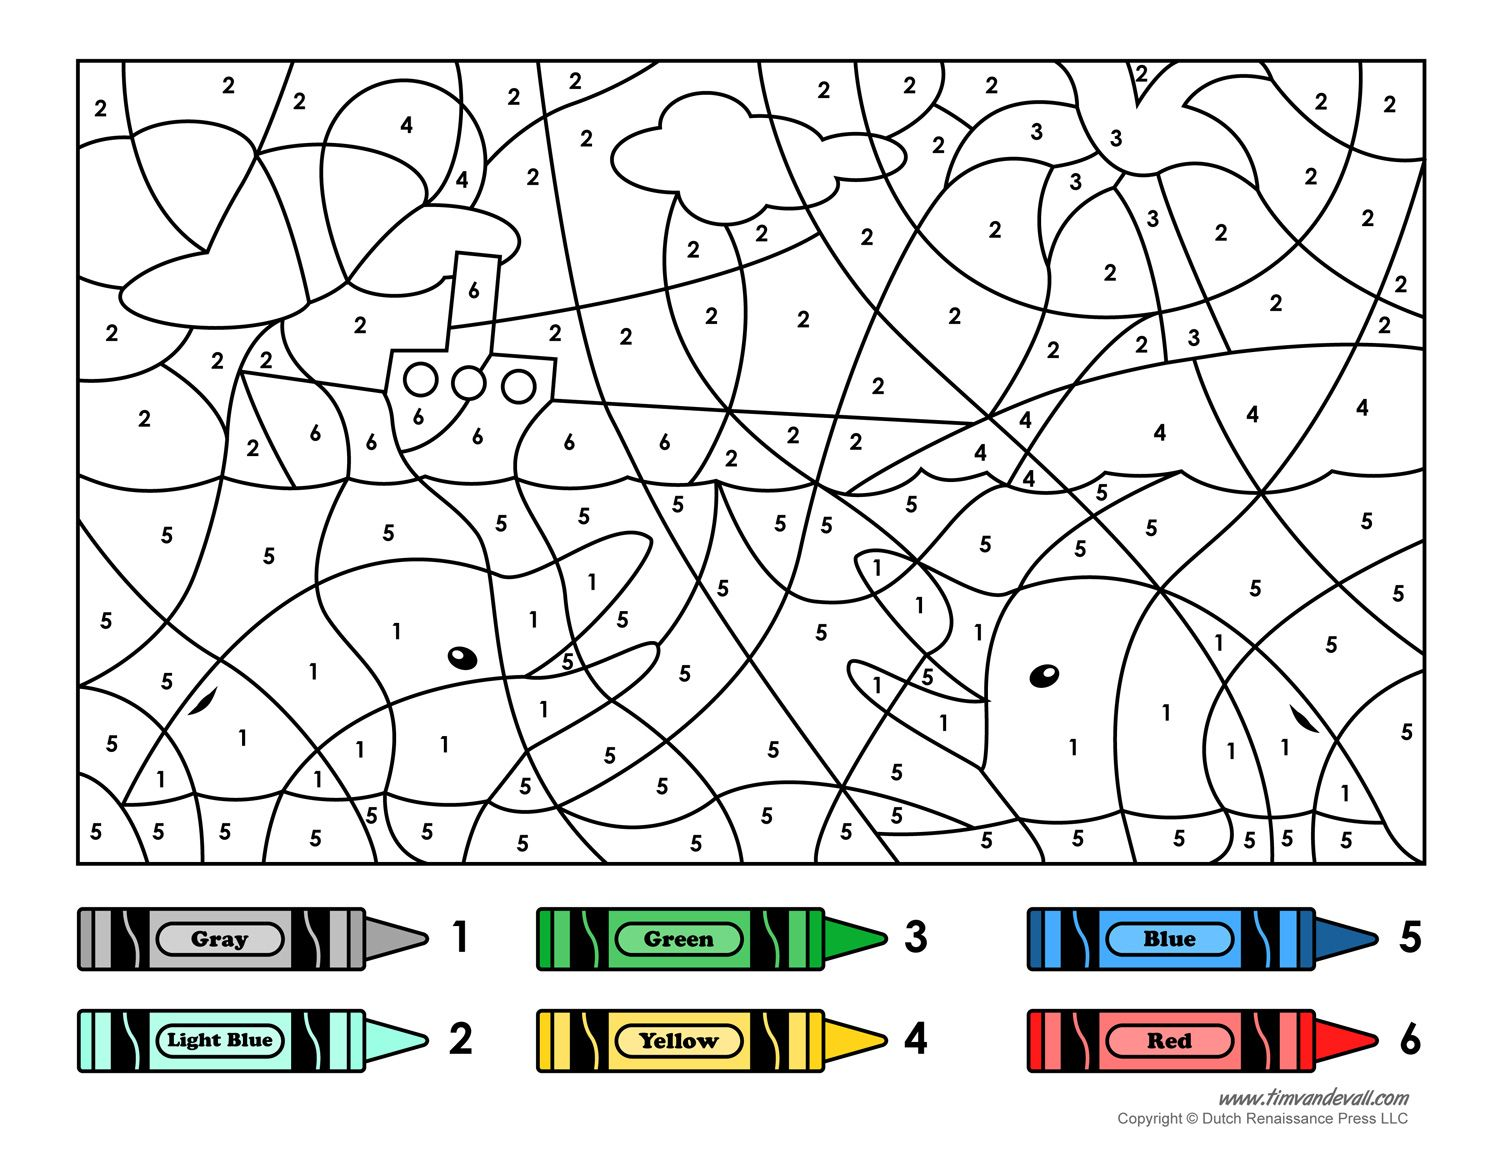 Colouring for kids games - A Color By Number Printable For Kids